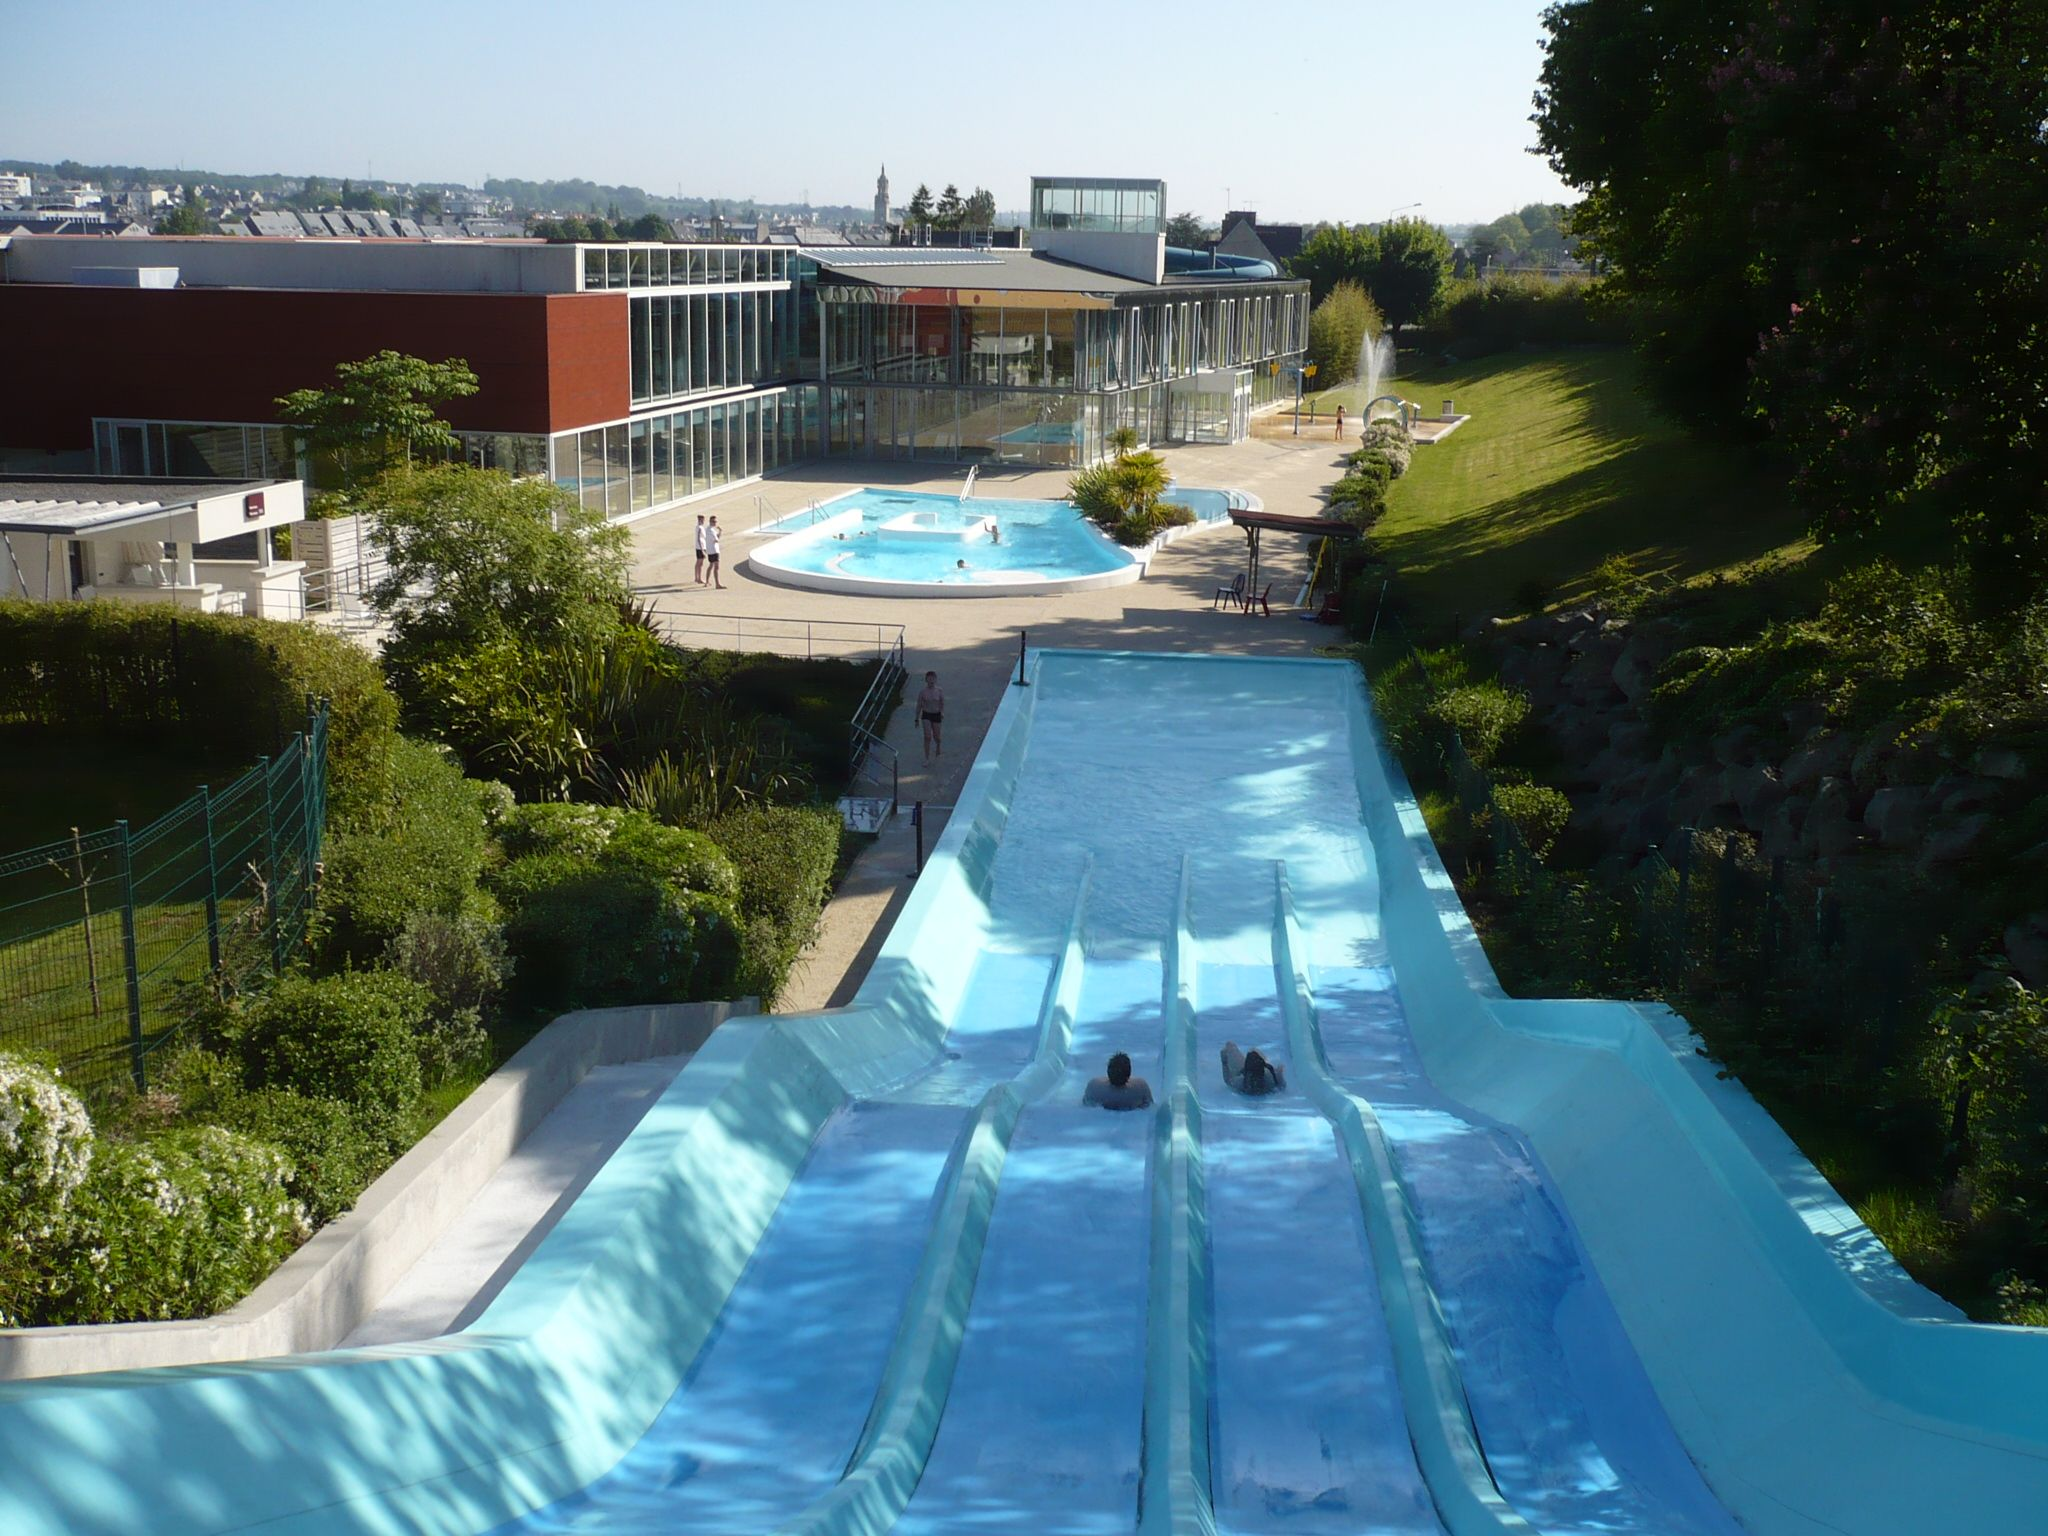 Centre aquatique aqualorn for Horaire piscine bressuire